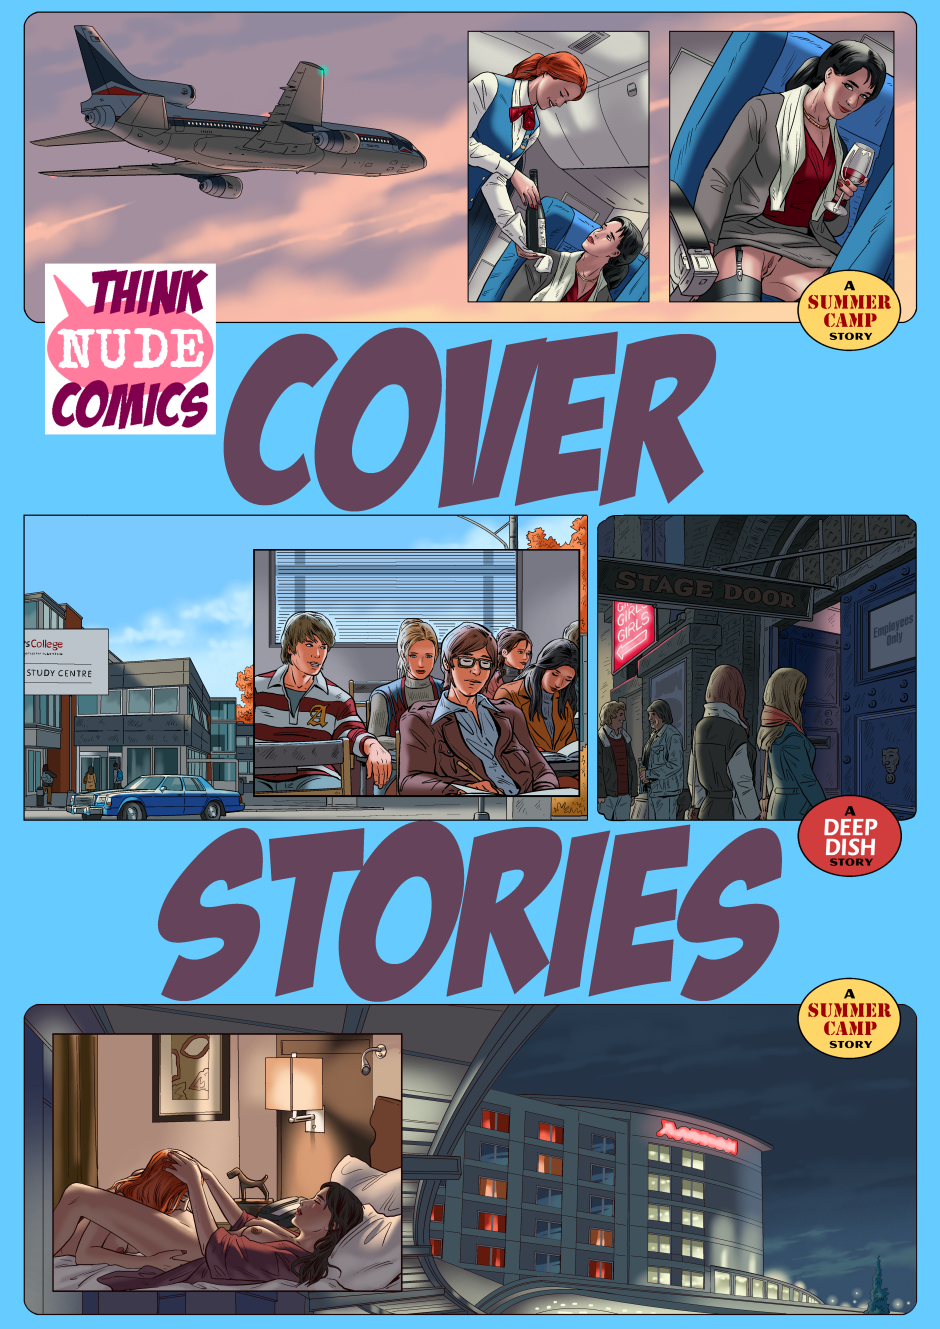 Cover Stories Title